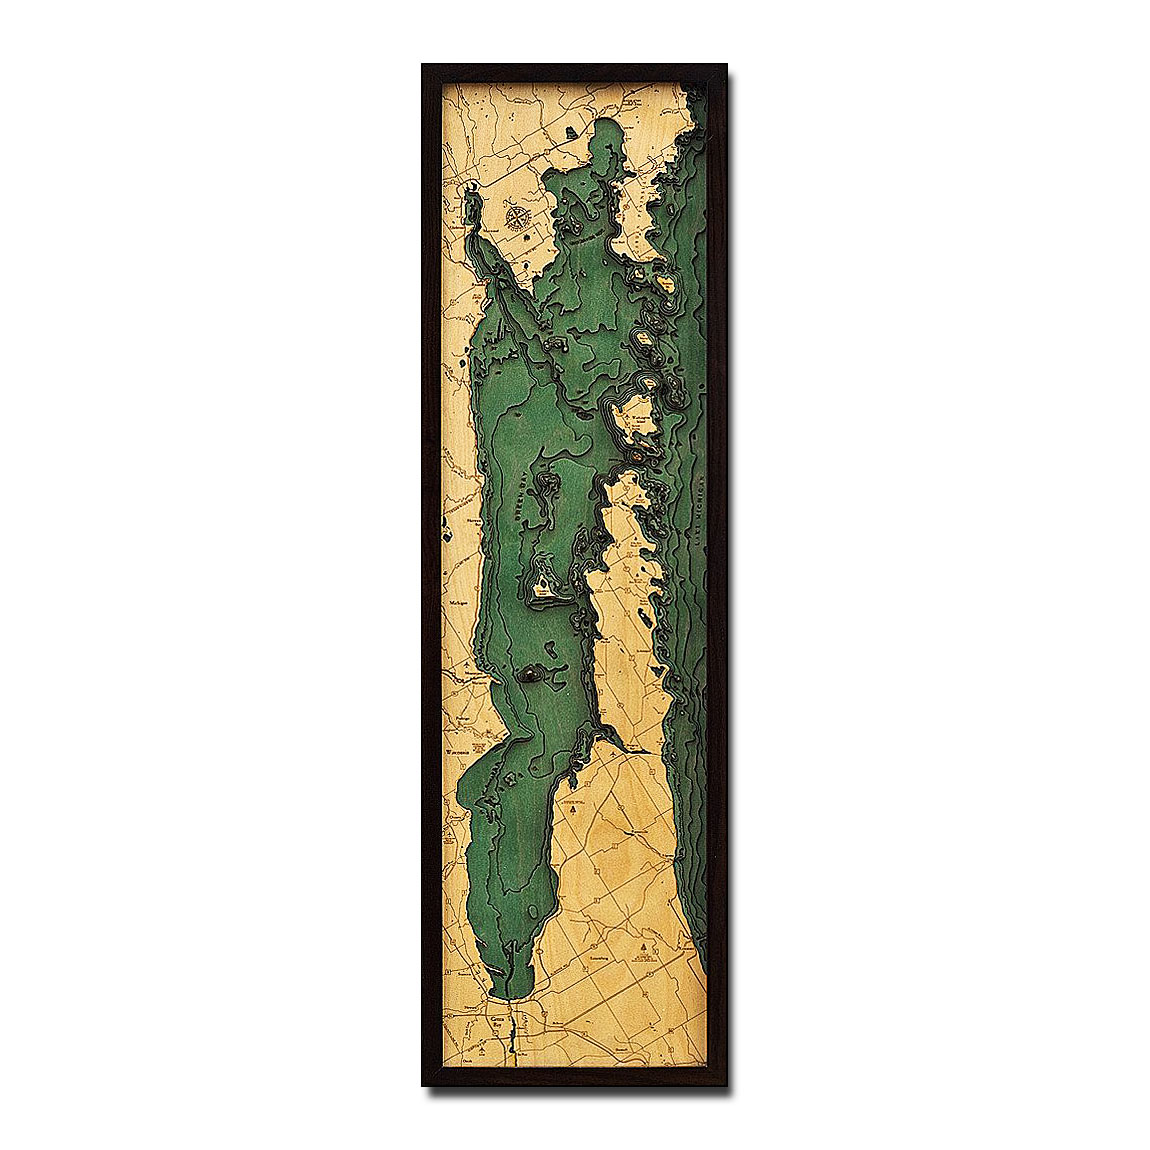 Green Bay / Door County Peninsula 3D Wood Map